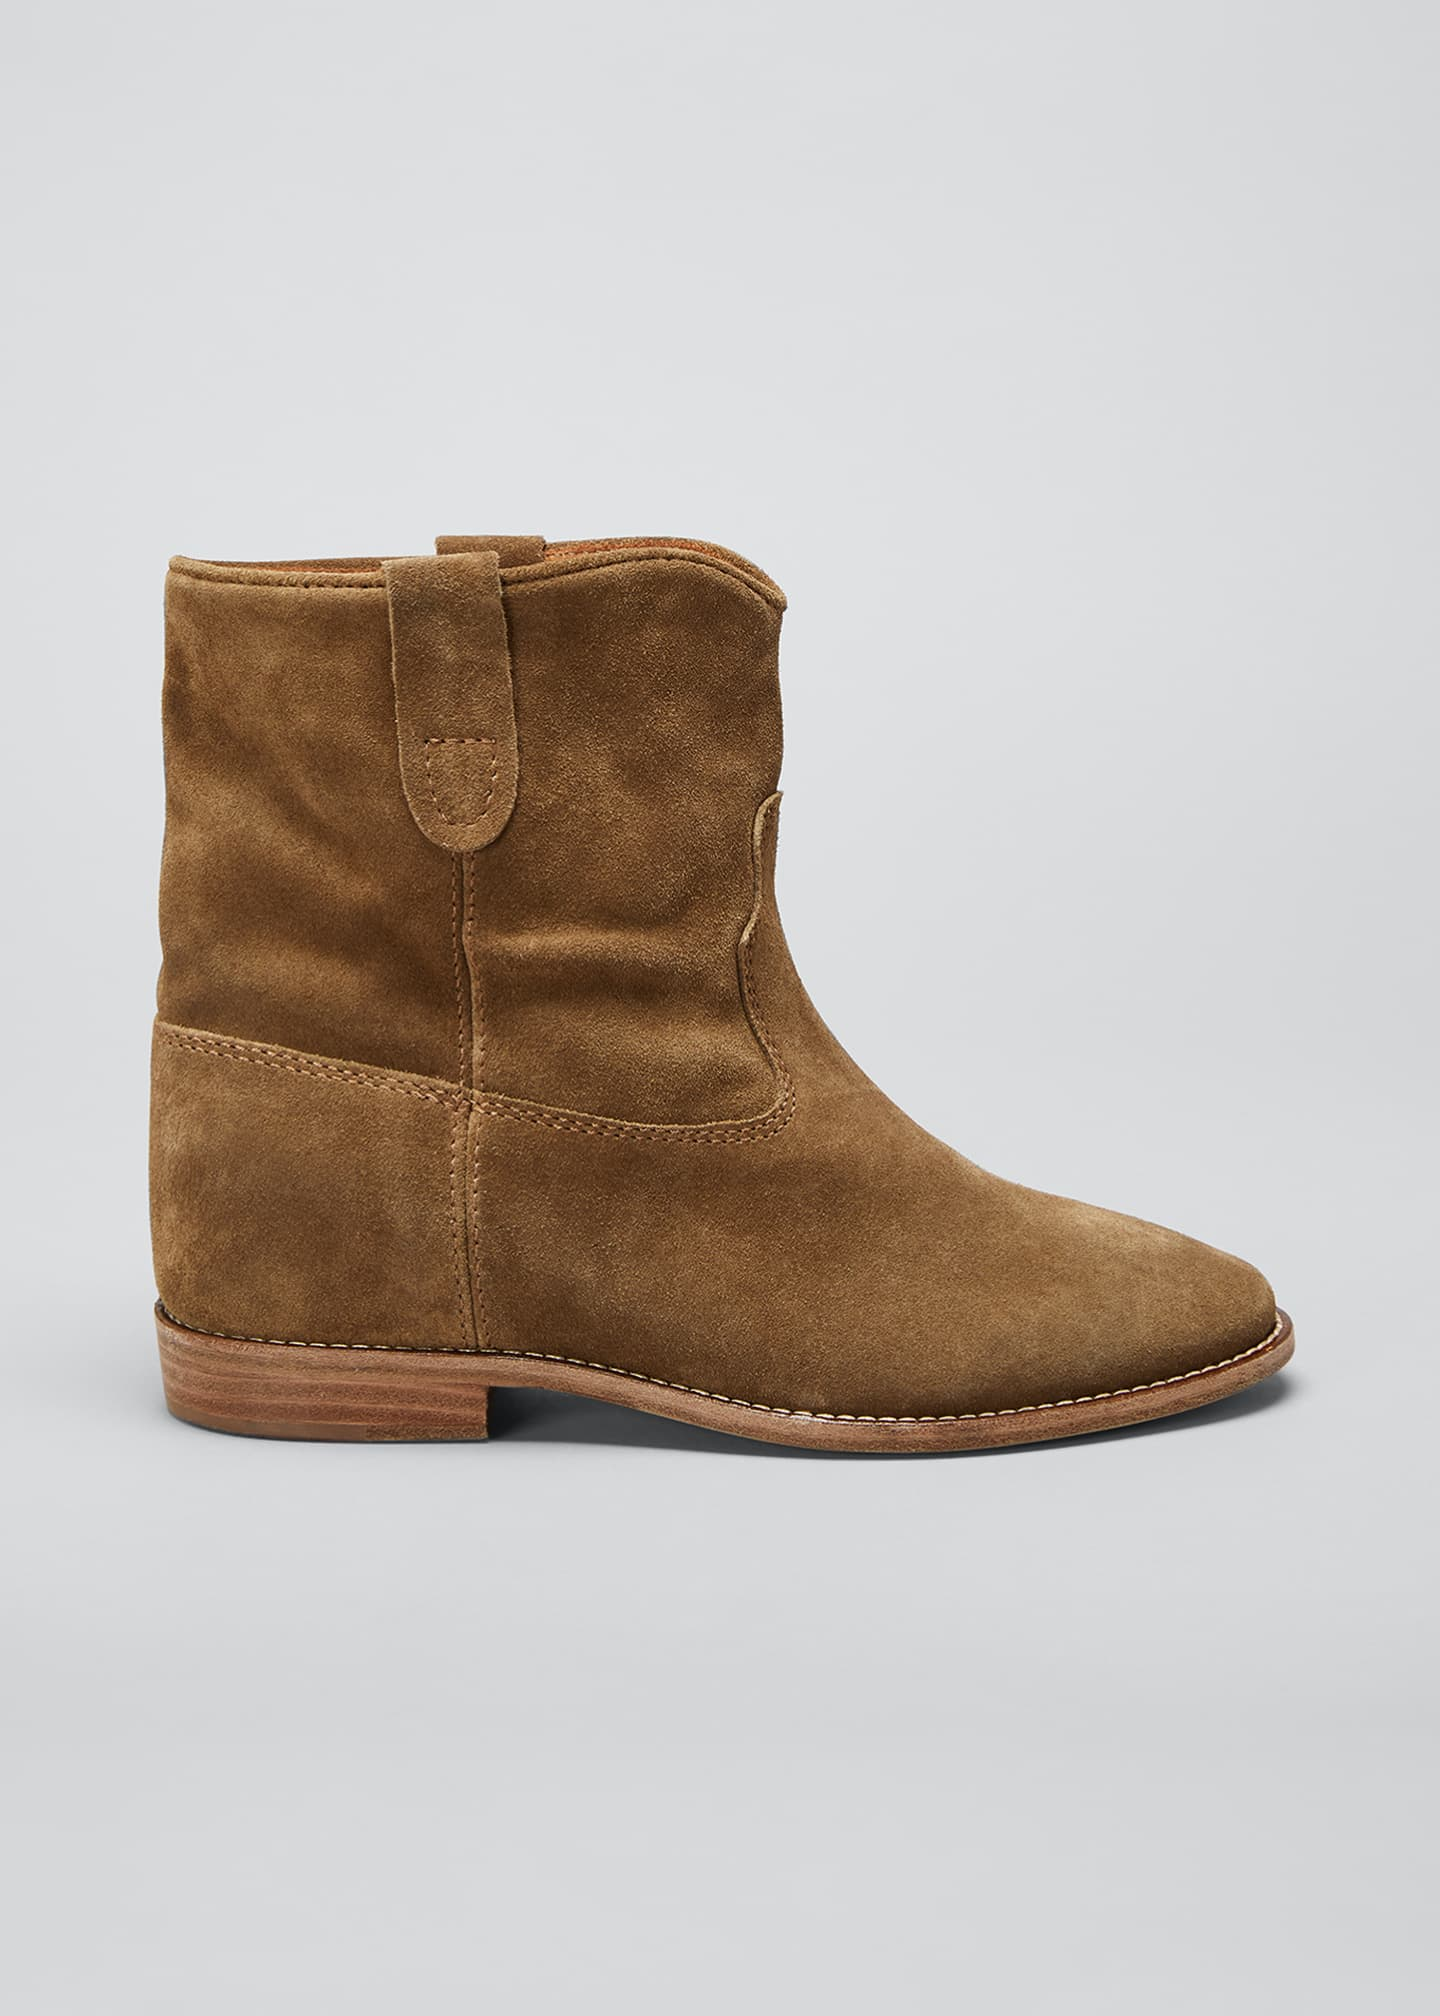 Image 1 of 5: Crisi Western Suede Flat Booties